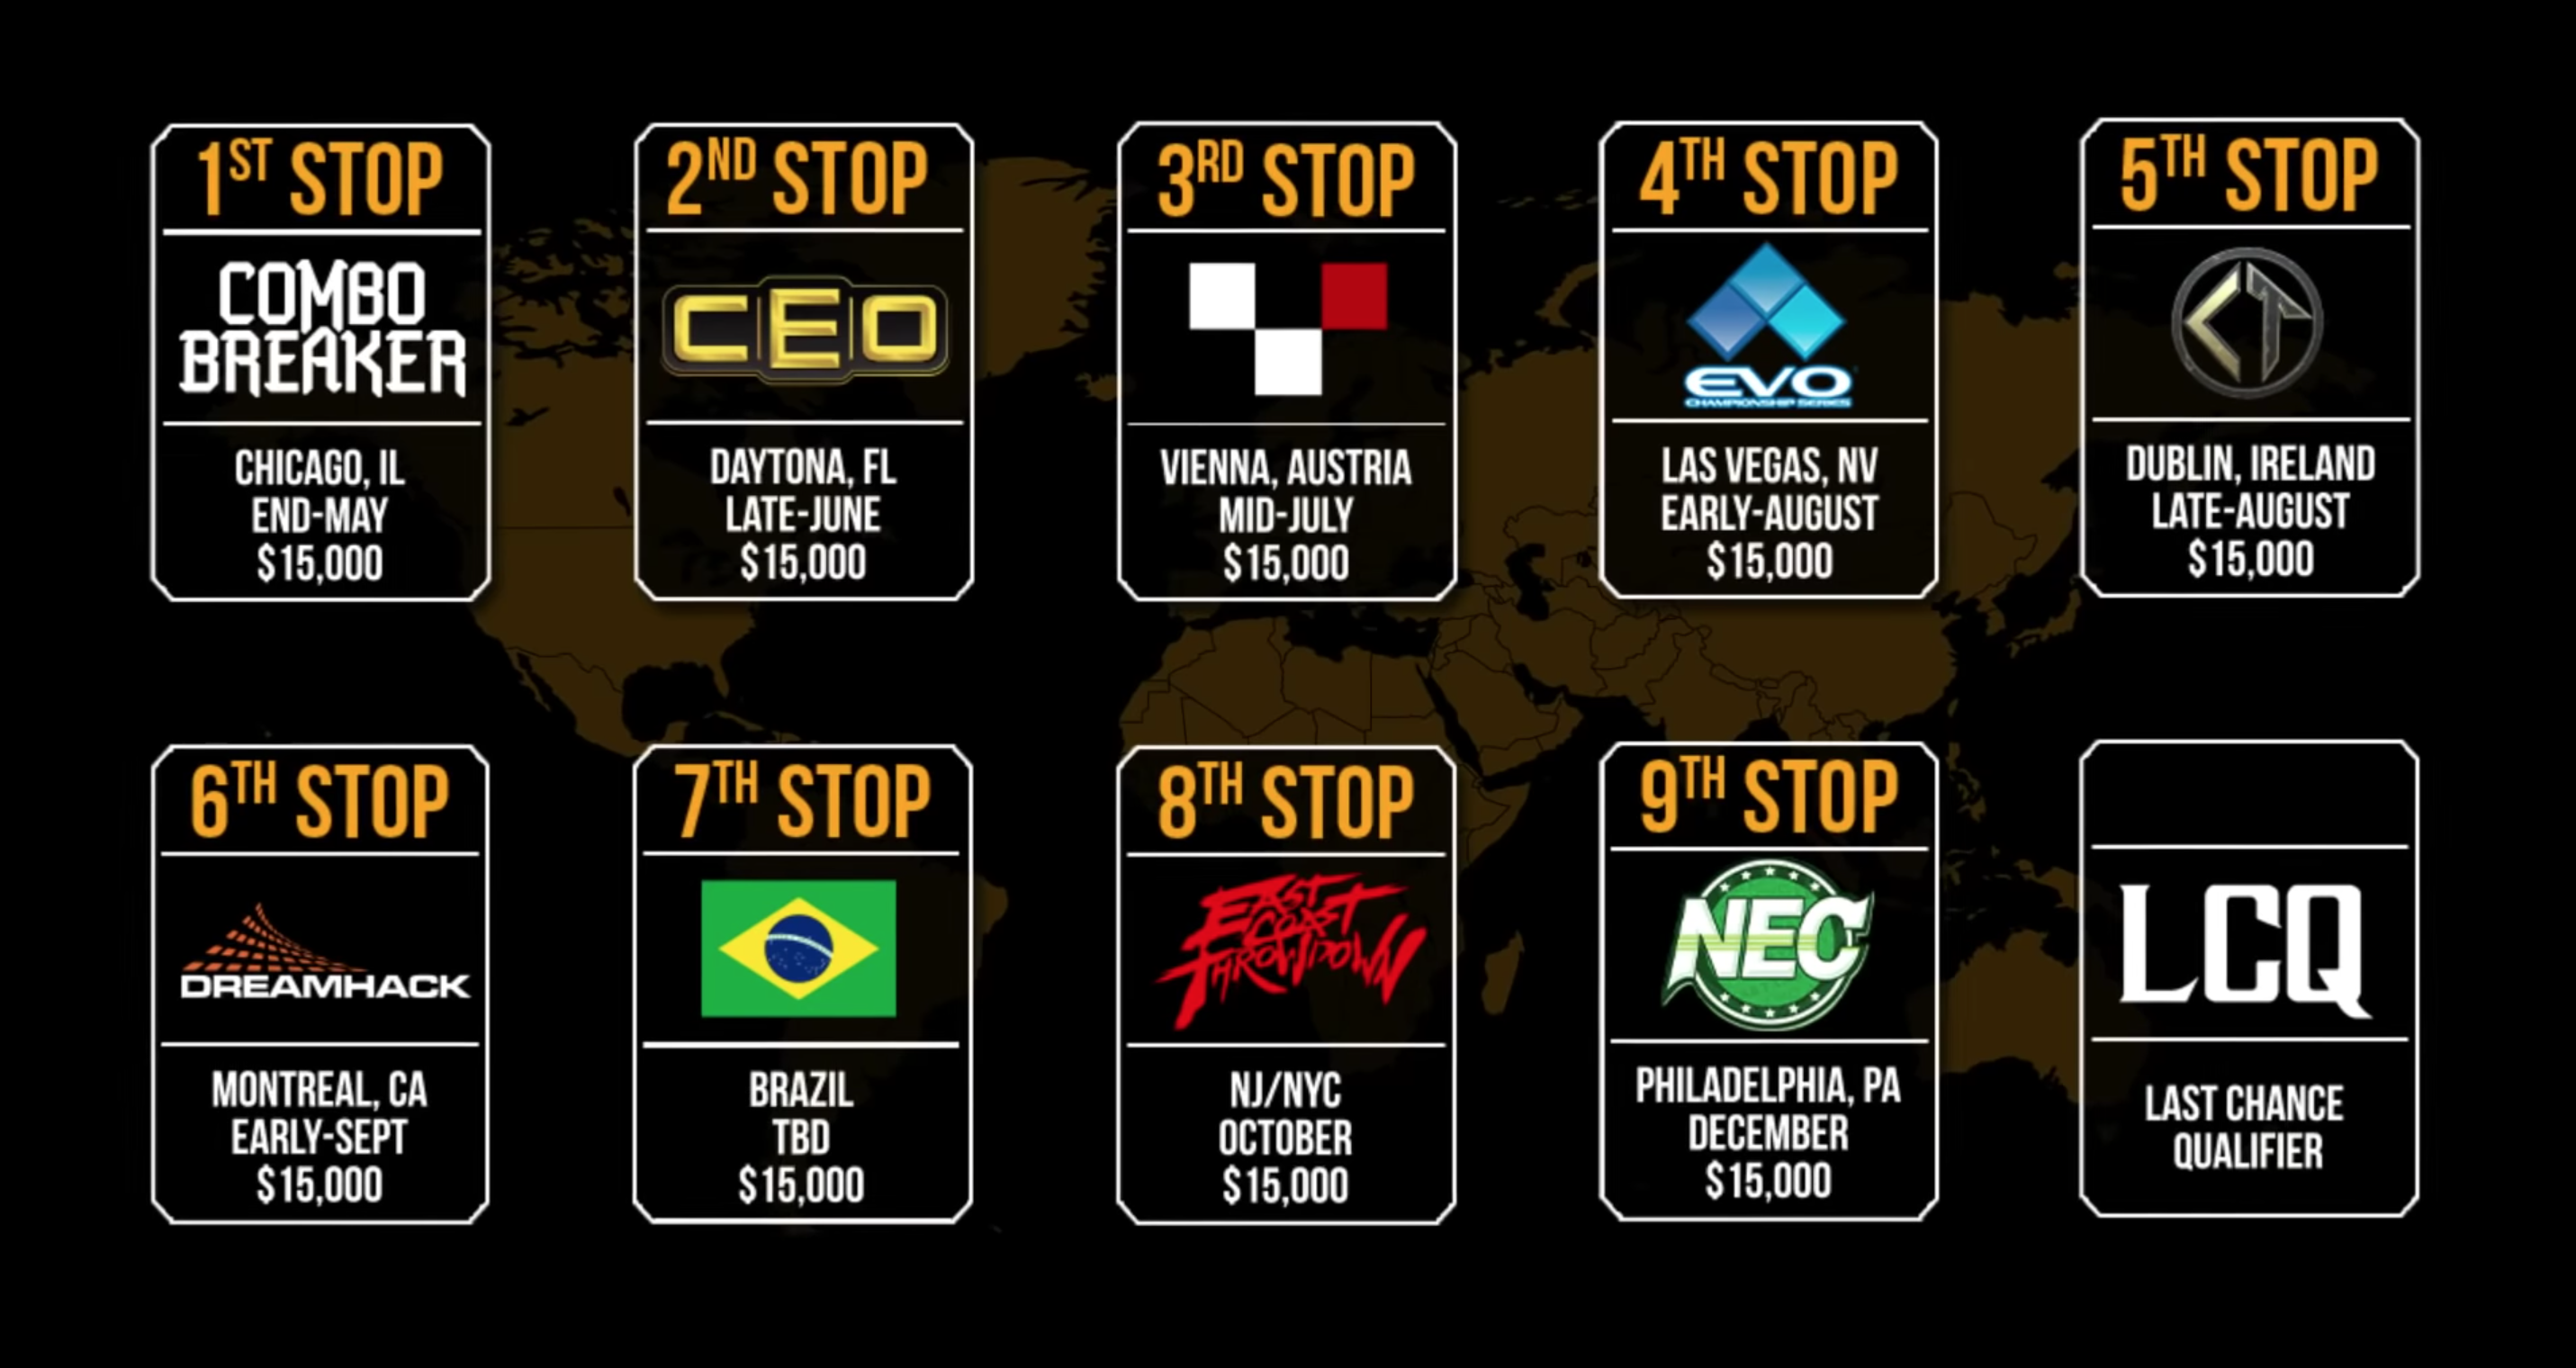 The first of these events will take place at Combo Breaker in Chicago on May 24-26. Some other notable events that will feature Pro Kompetition play include CEO, EVO and Dreamhack.